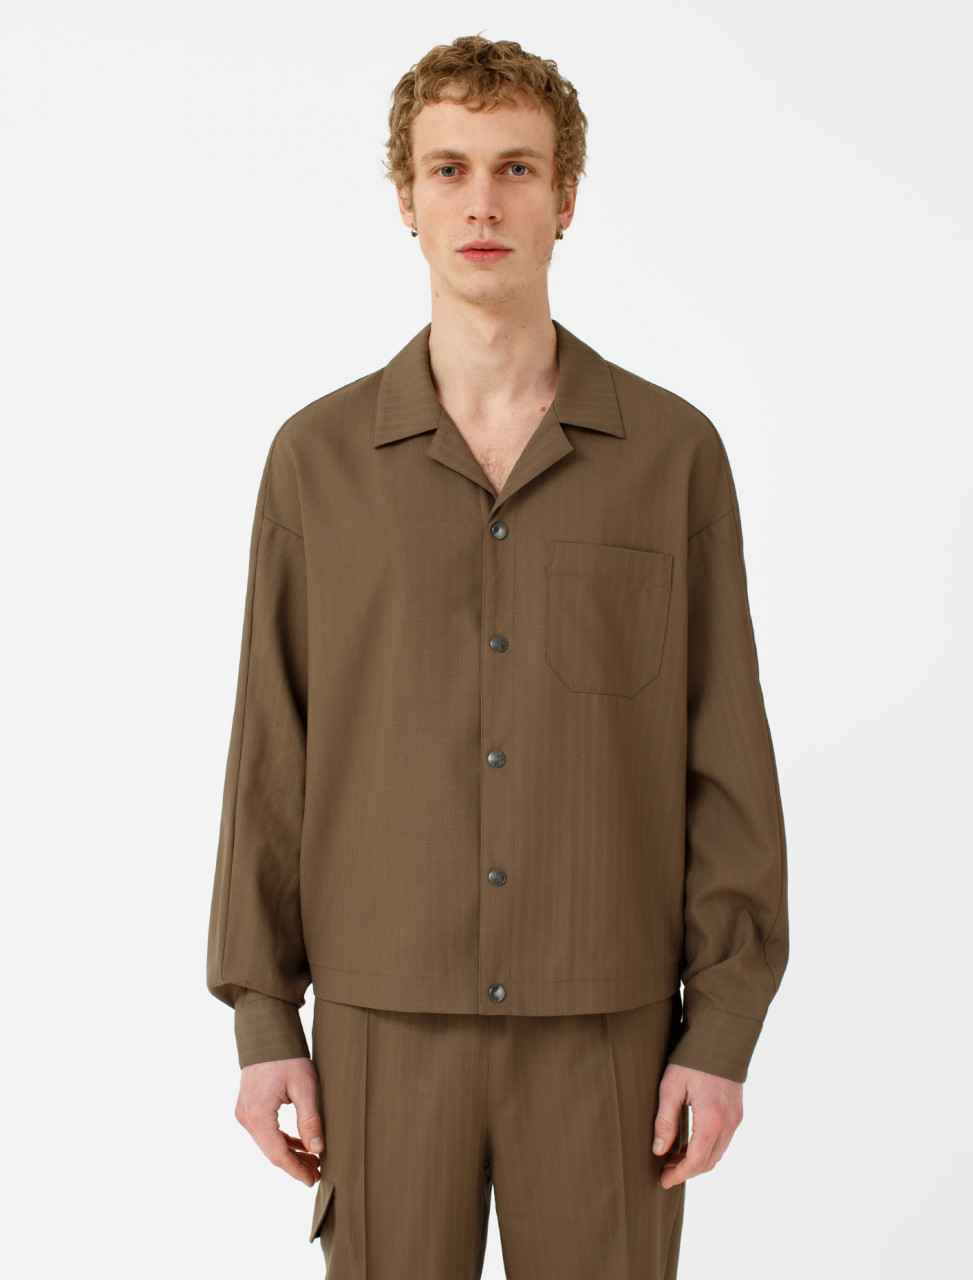 Billy Camp Collar Shirt Jacket